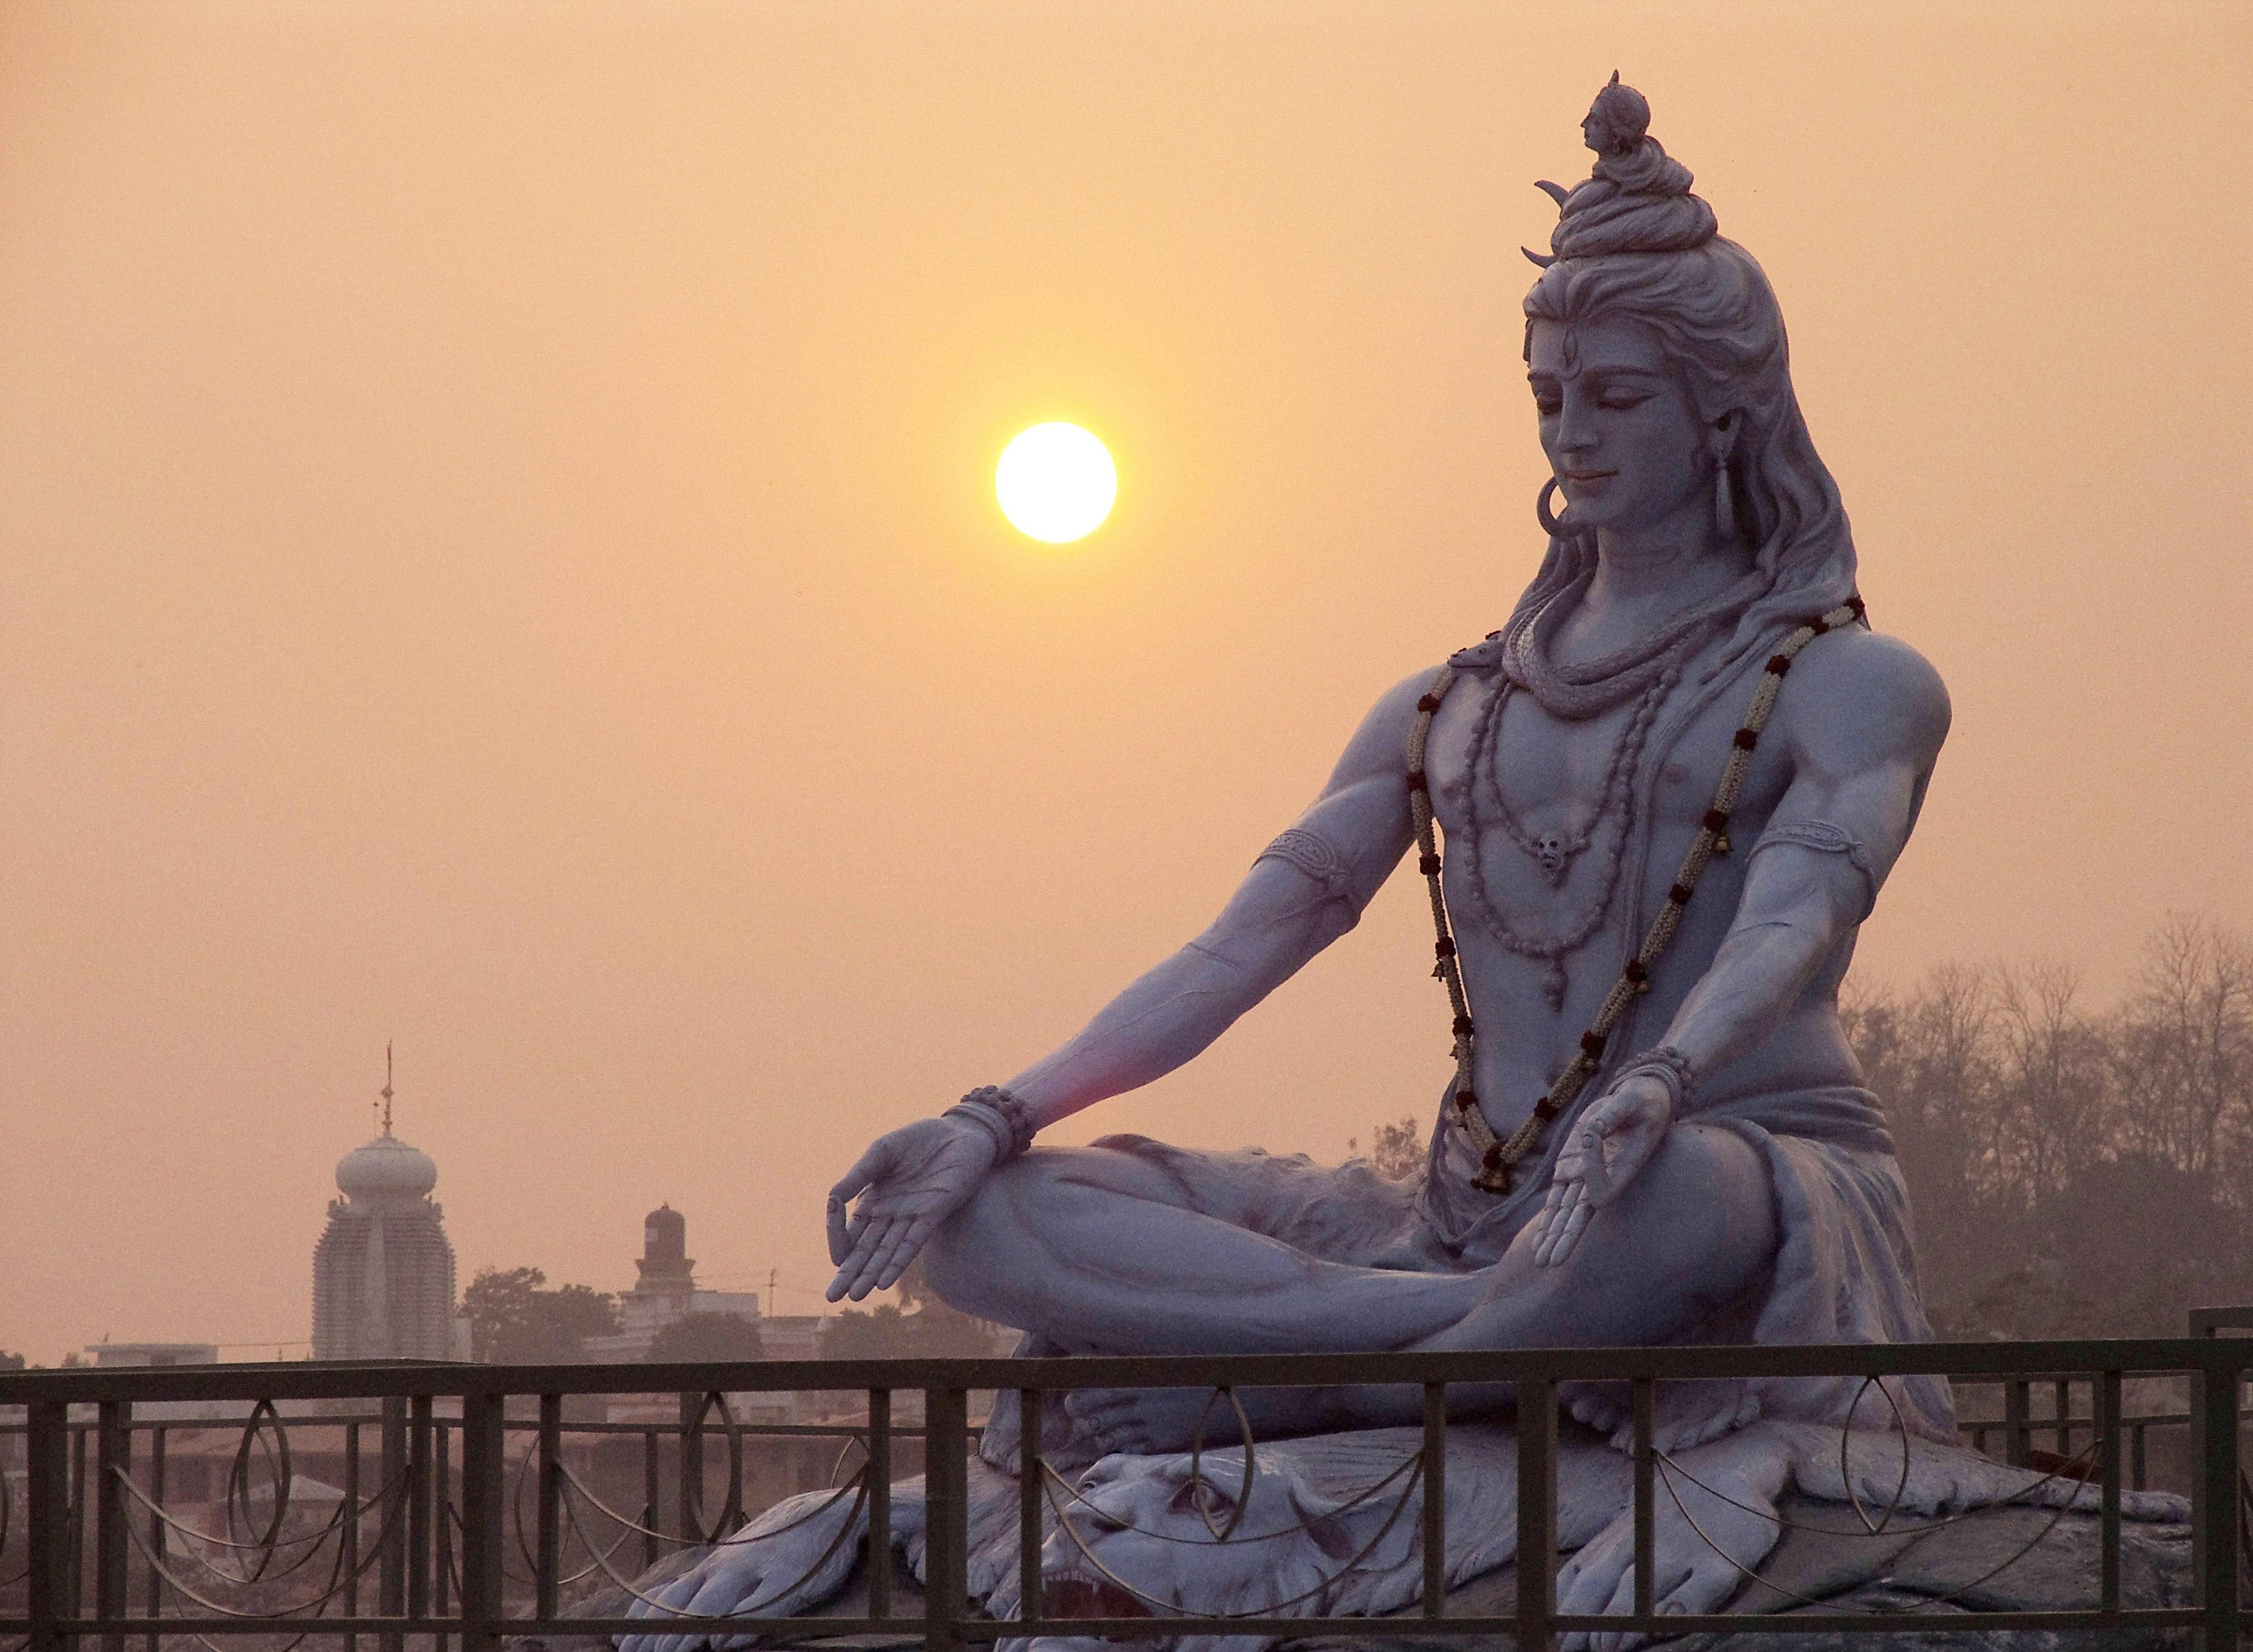 God Lord Shiva Hd Wallpapers For Pc 382578 Hd Wallpaper Backgrounds Download